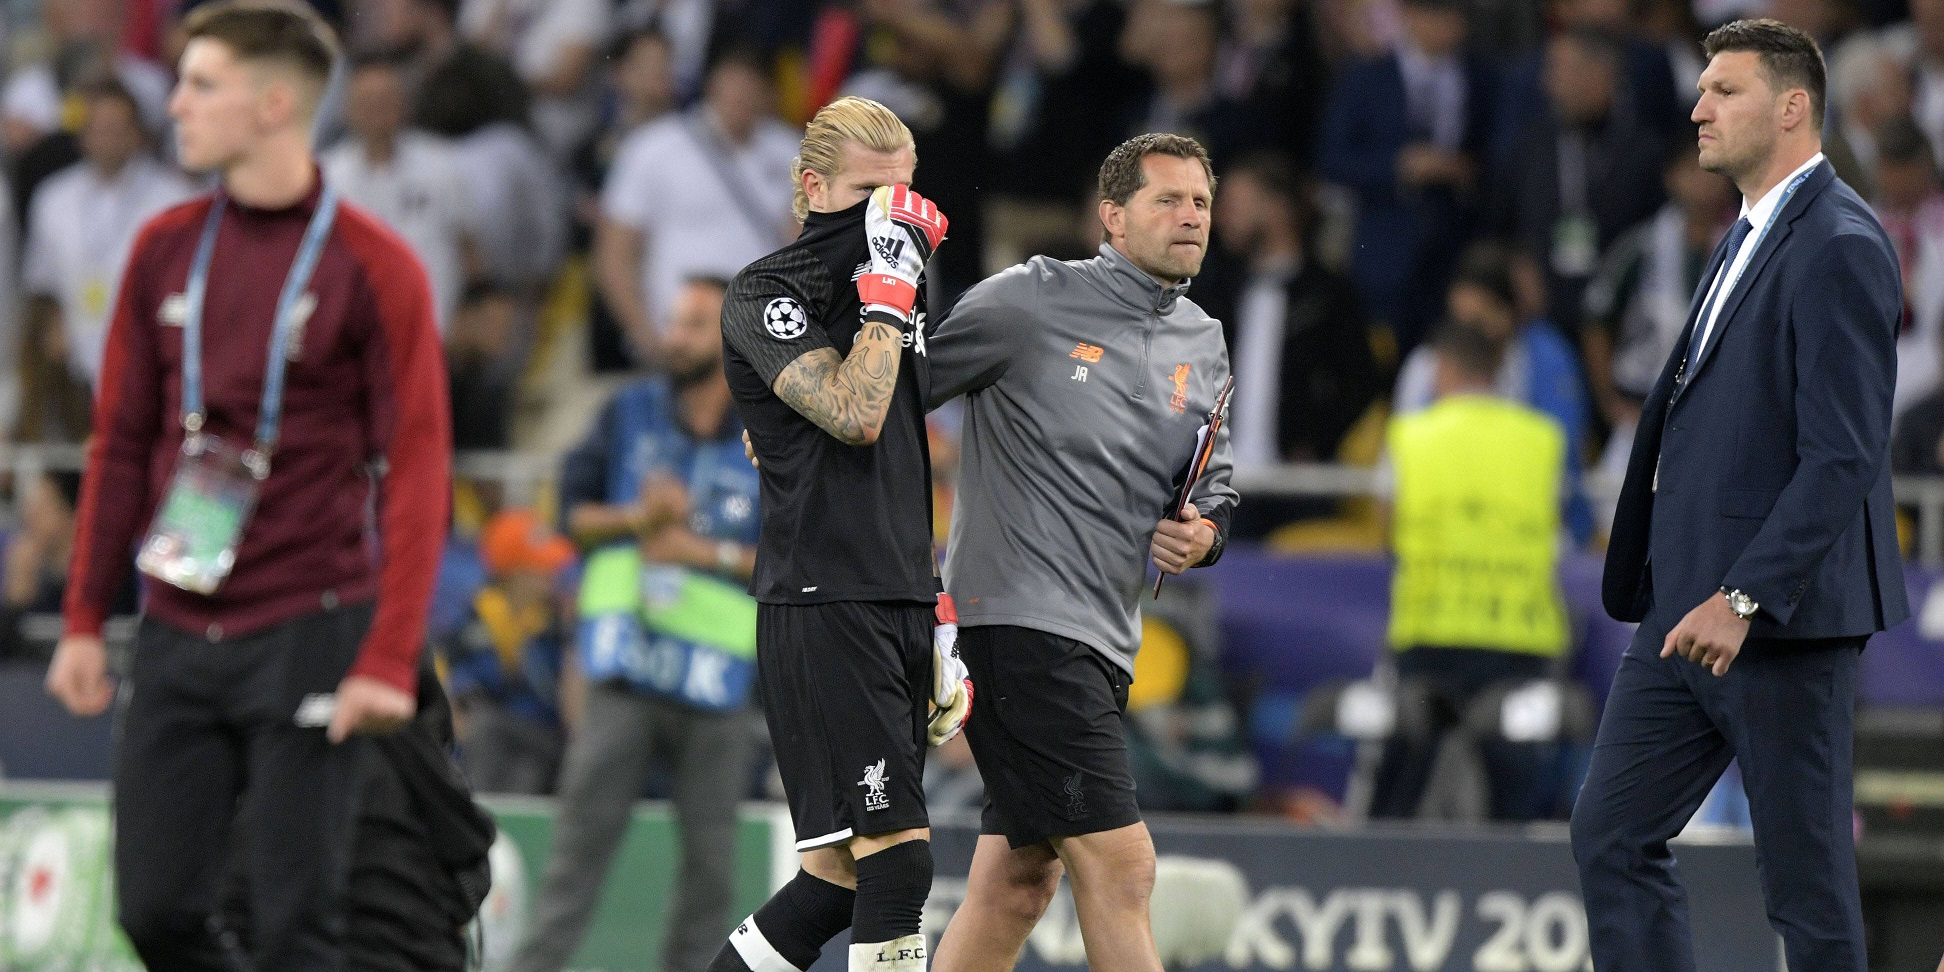 Liverpool coach cites Klopp's philosophy in reaction to Karius' involvement in 2017/18 Champions League final defeat